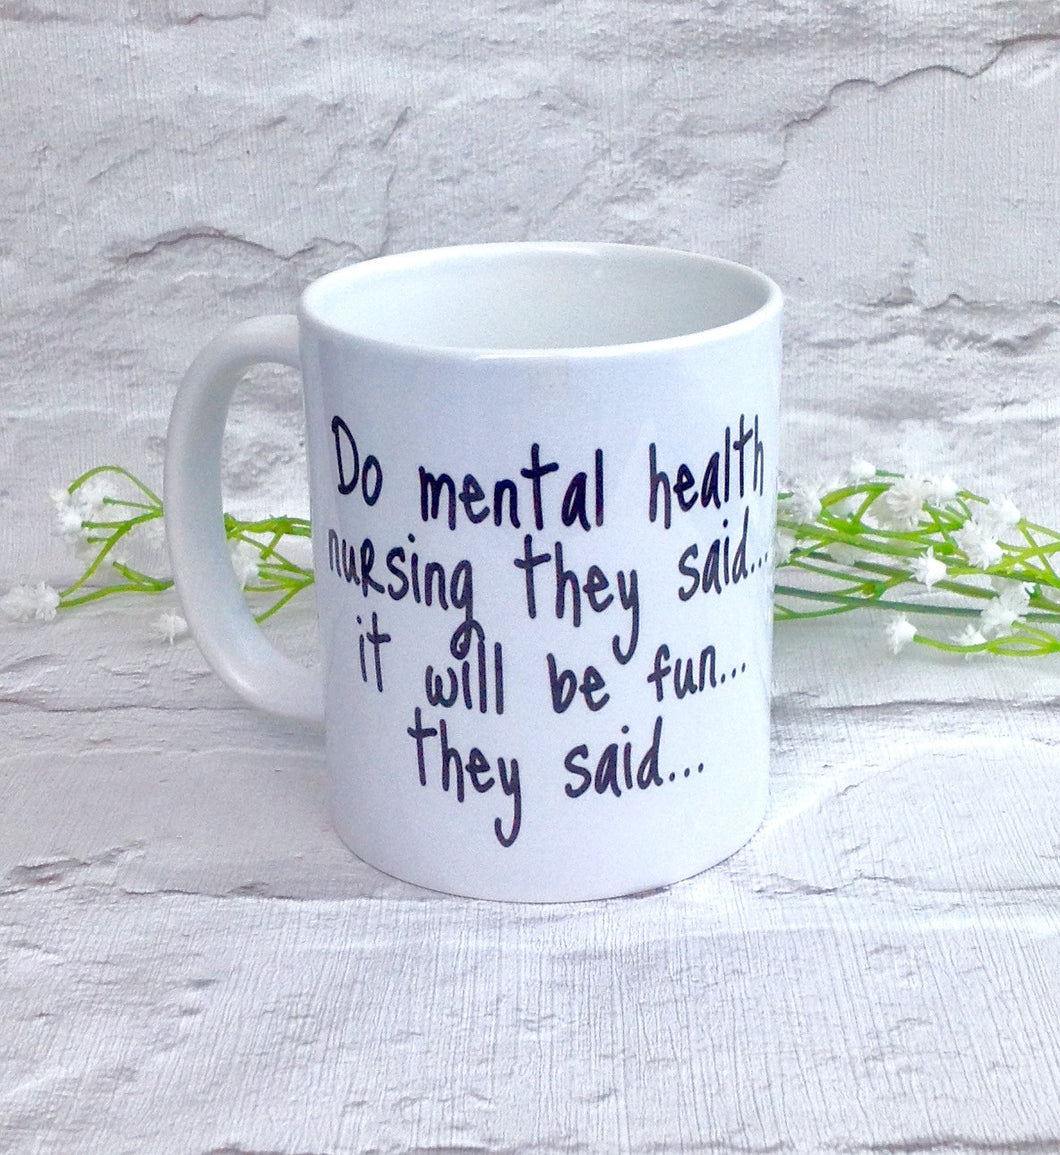 Mental health nurse quote ceramic mug - Fred And Bo